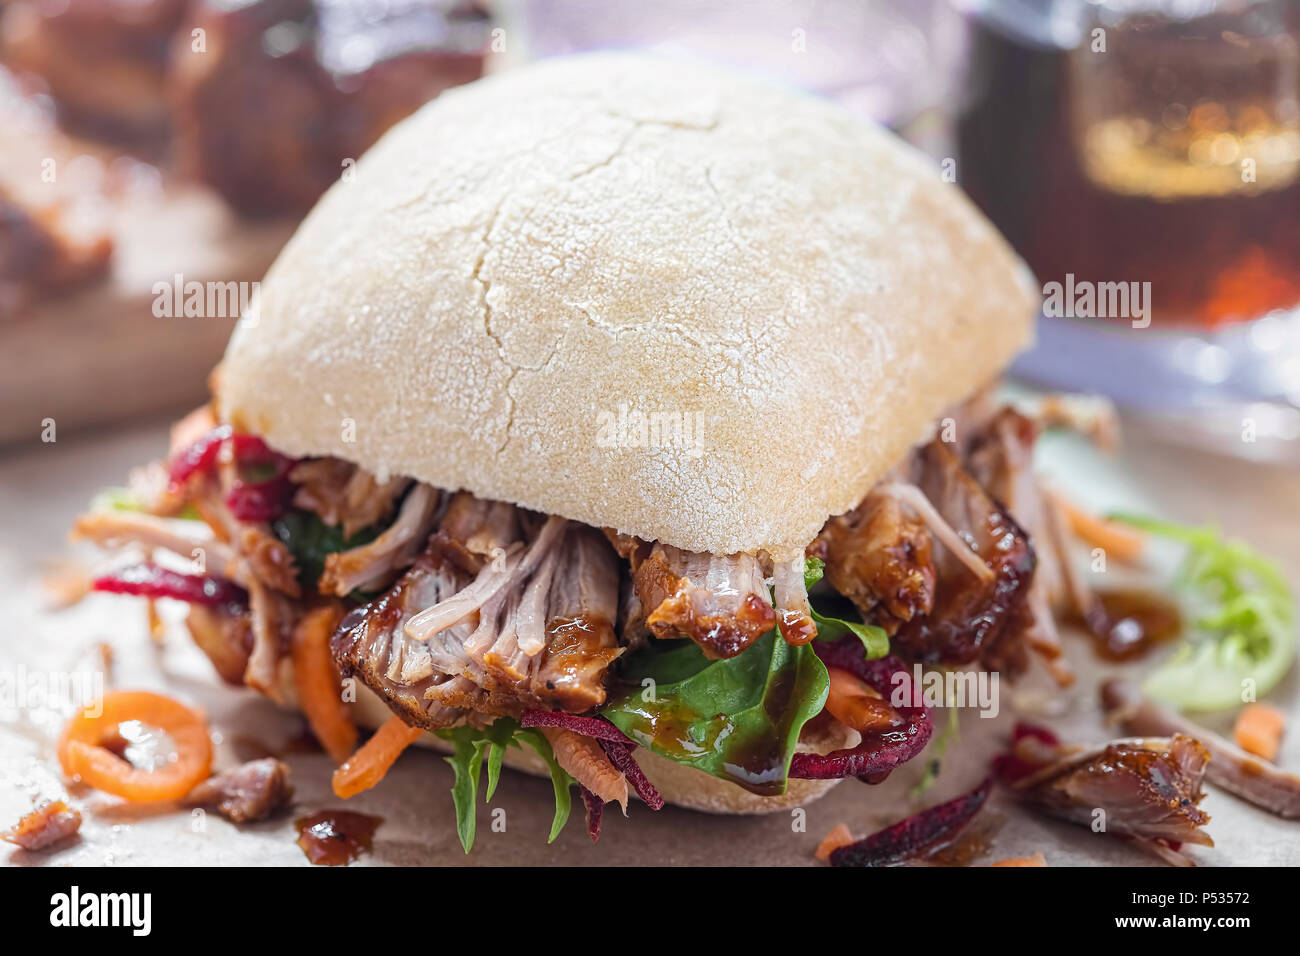 Pulled pork bun with lettuce and barbecue sauce - Stock Image